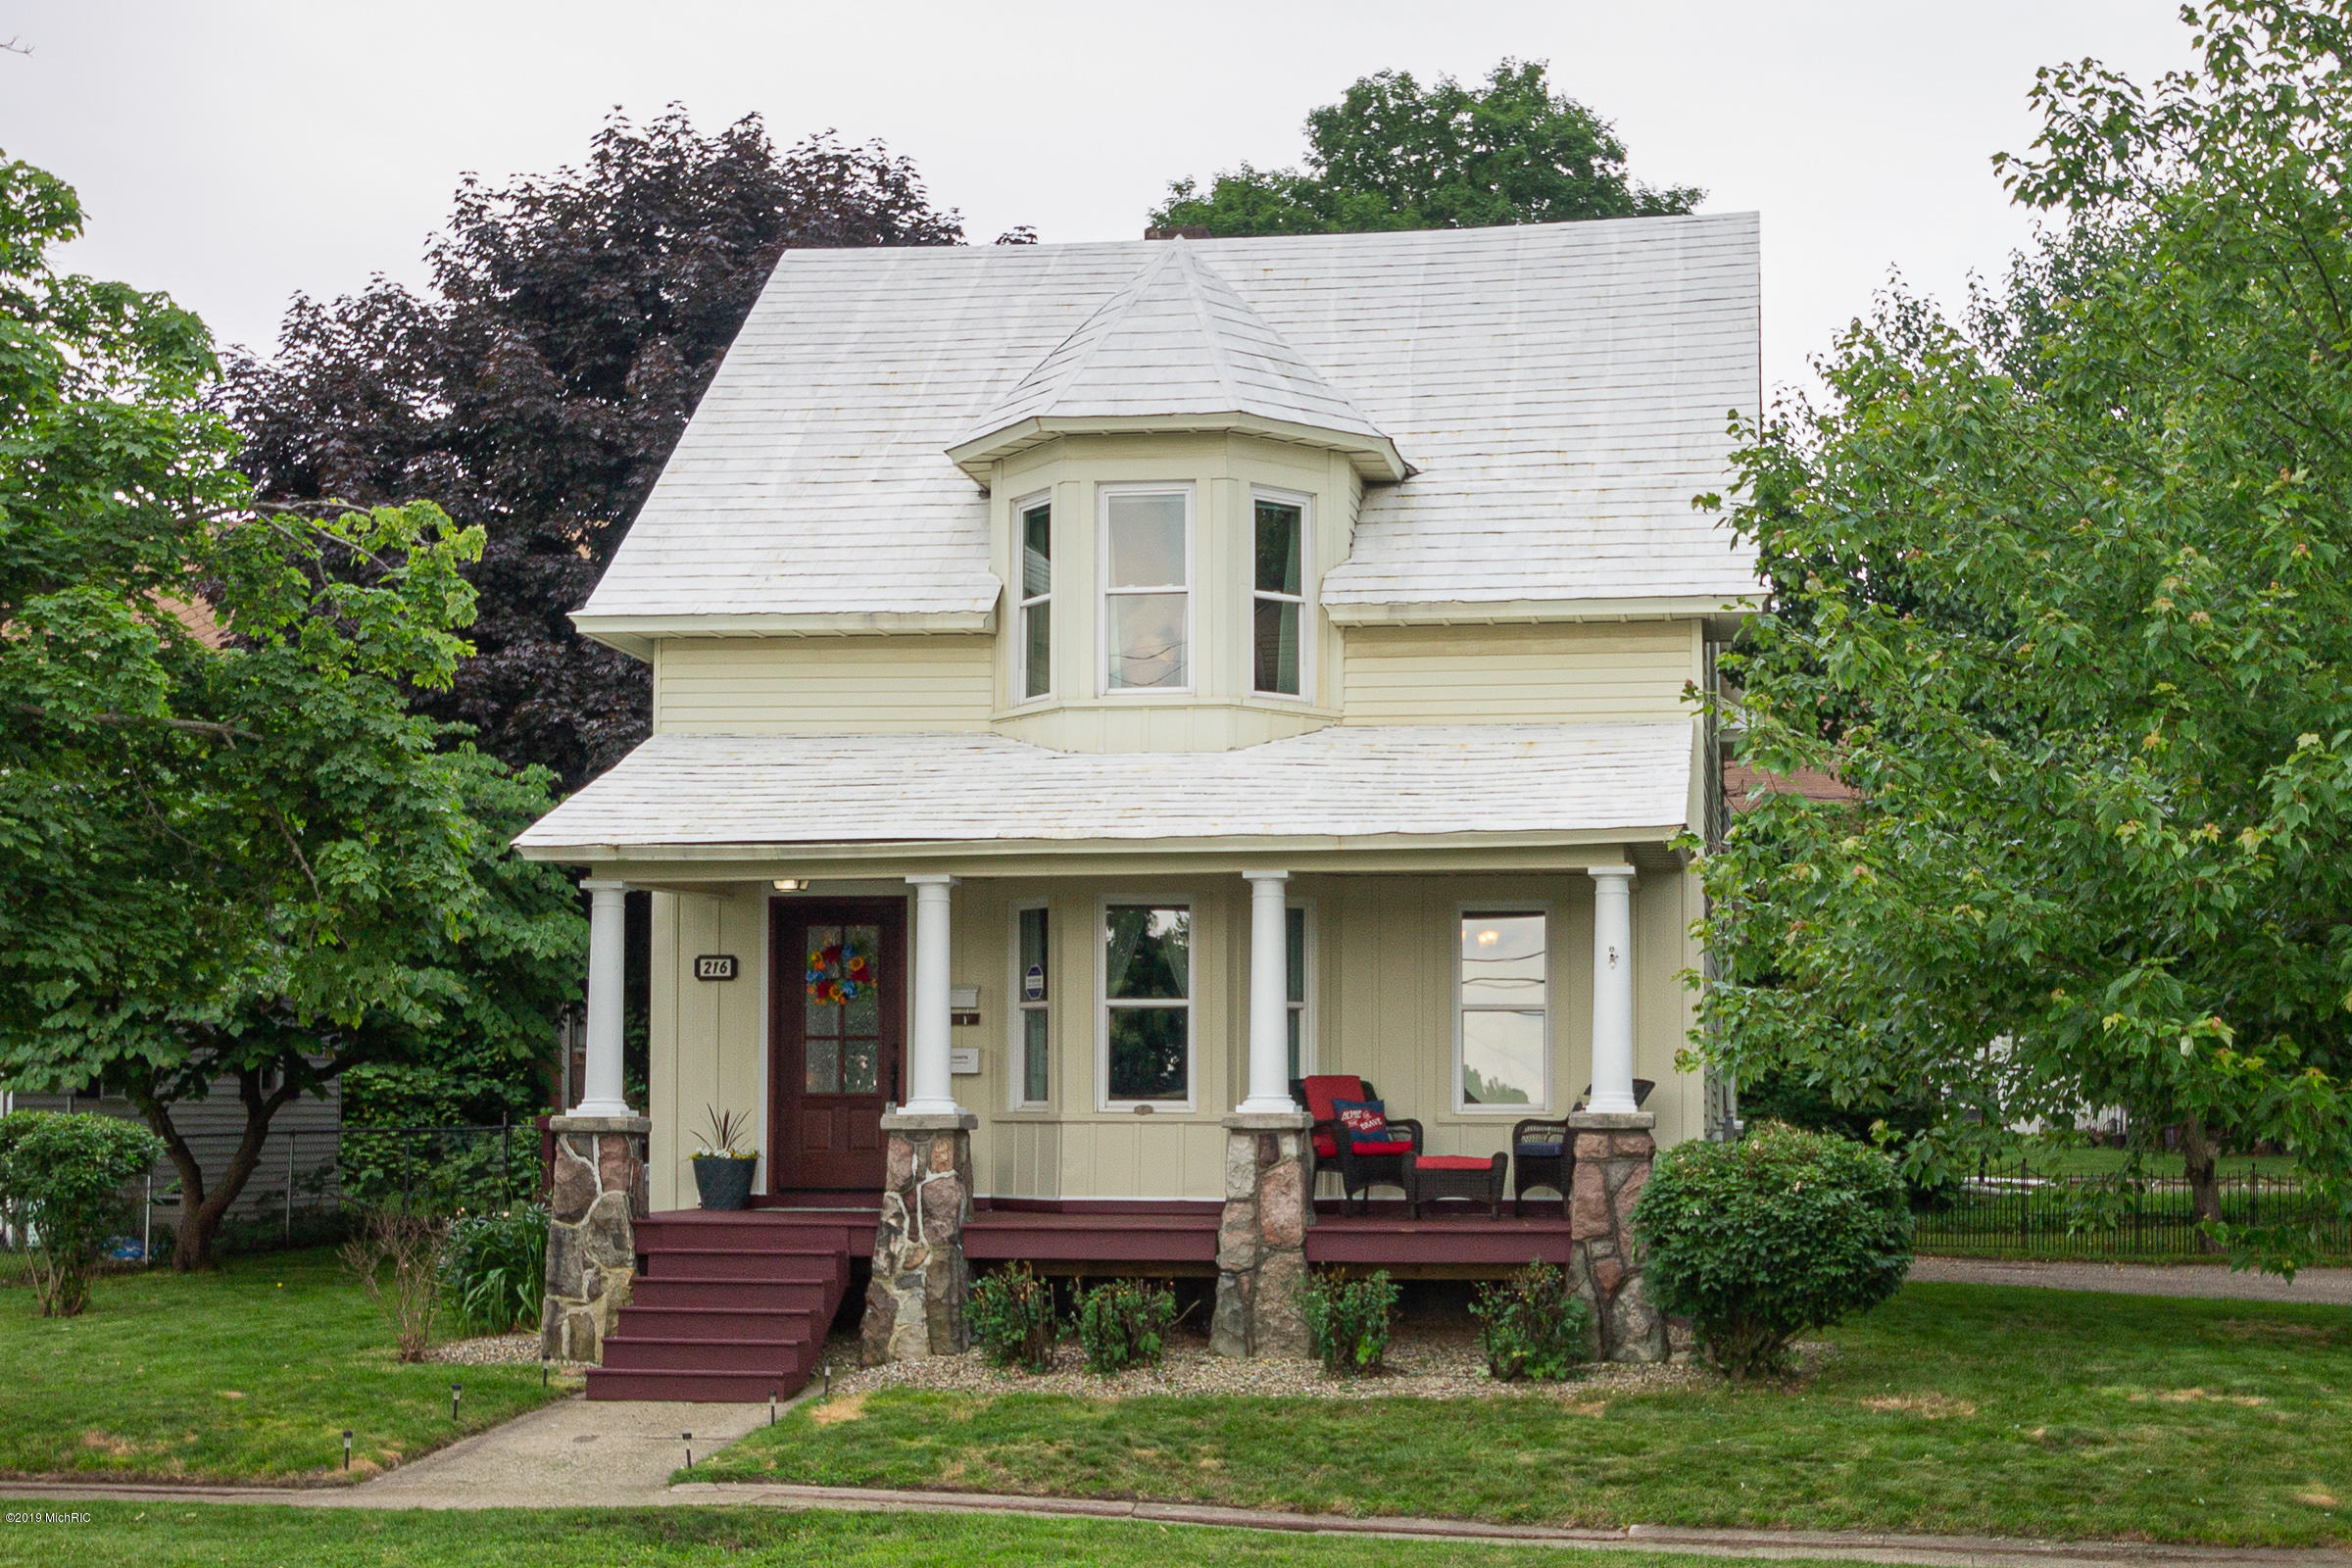 Photo for 216 S Kalamazoo Avenue, Vicksburg, MI 49097 (MLS # 19028163)